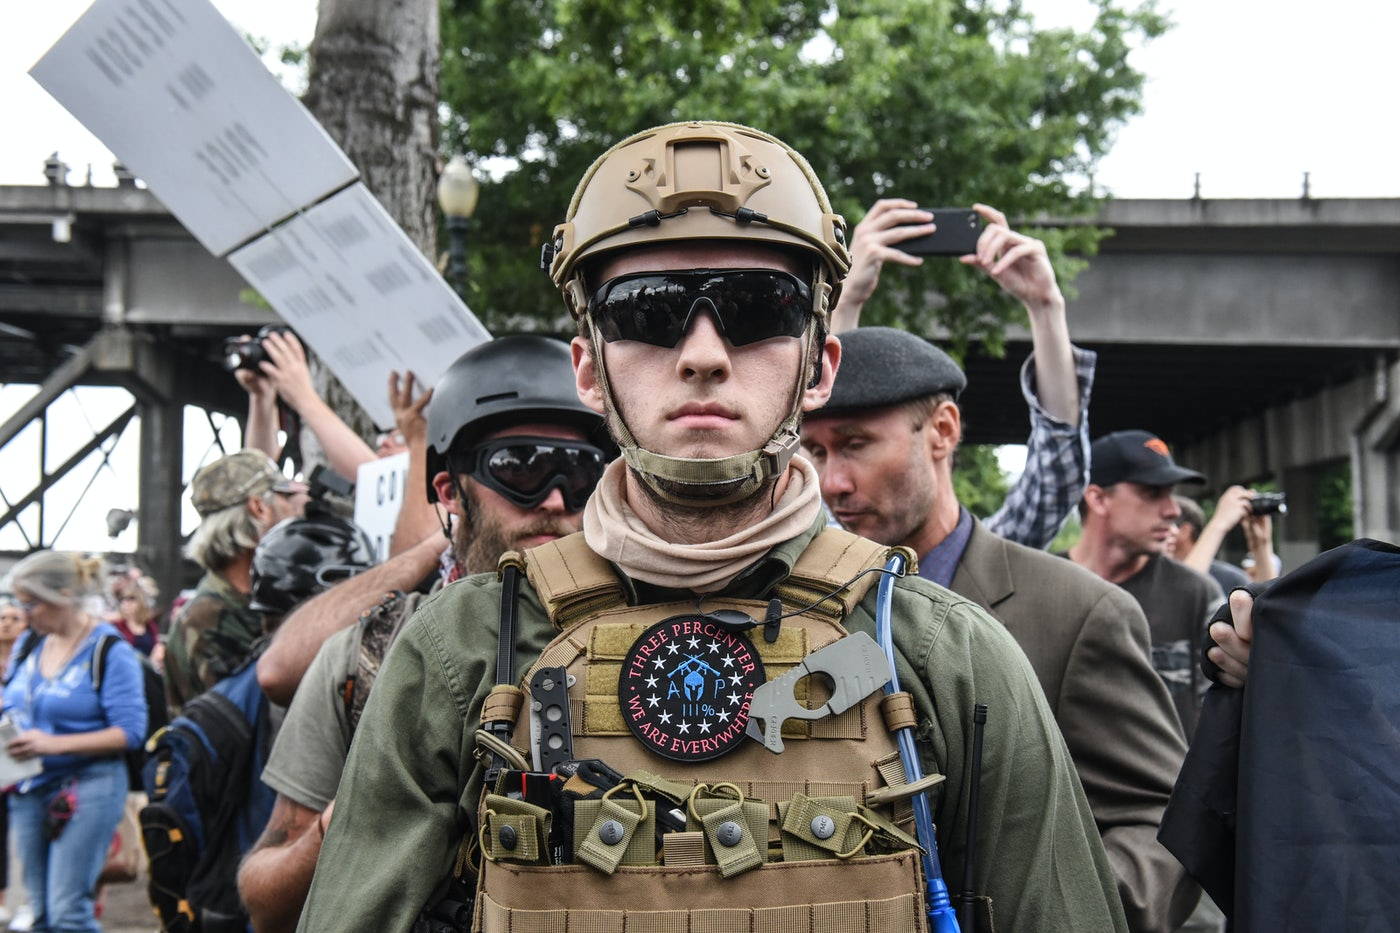 Members of a white nationalist group at an alt-right rally in Portland